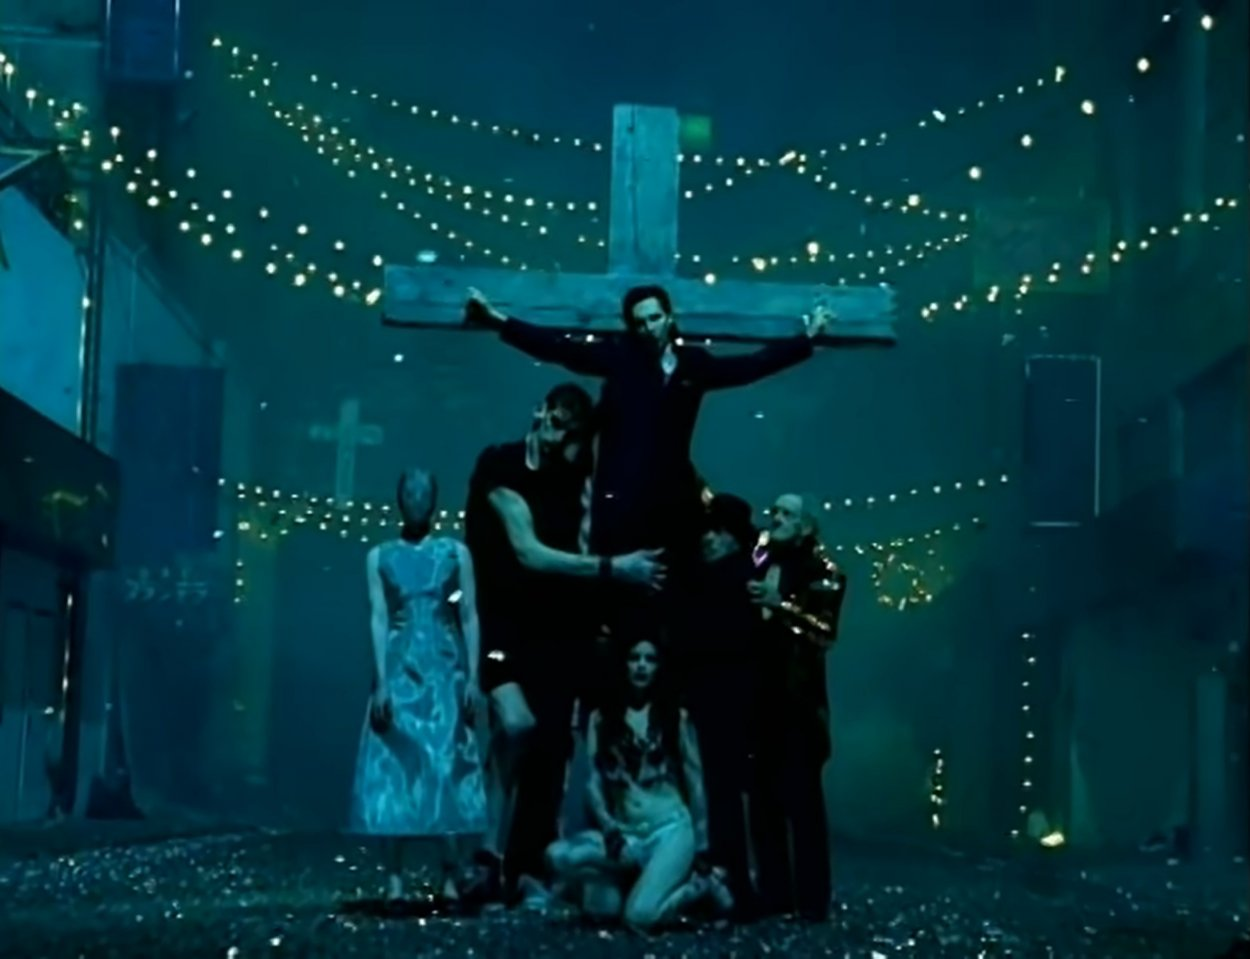 """Marilyn Manson hanging from a crucifix surrounded by an odd assortment of people in the """"Coma White"""" music video"""